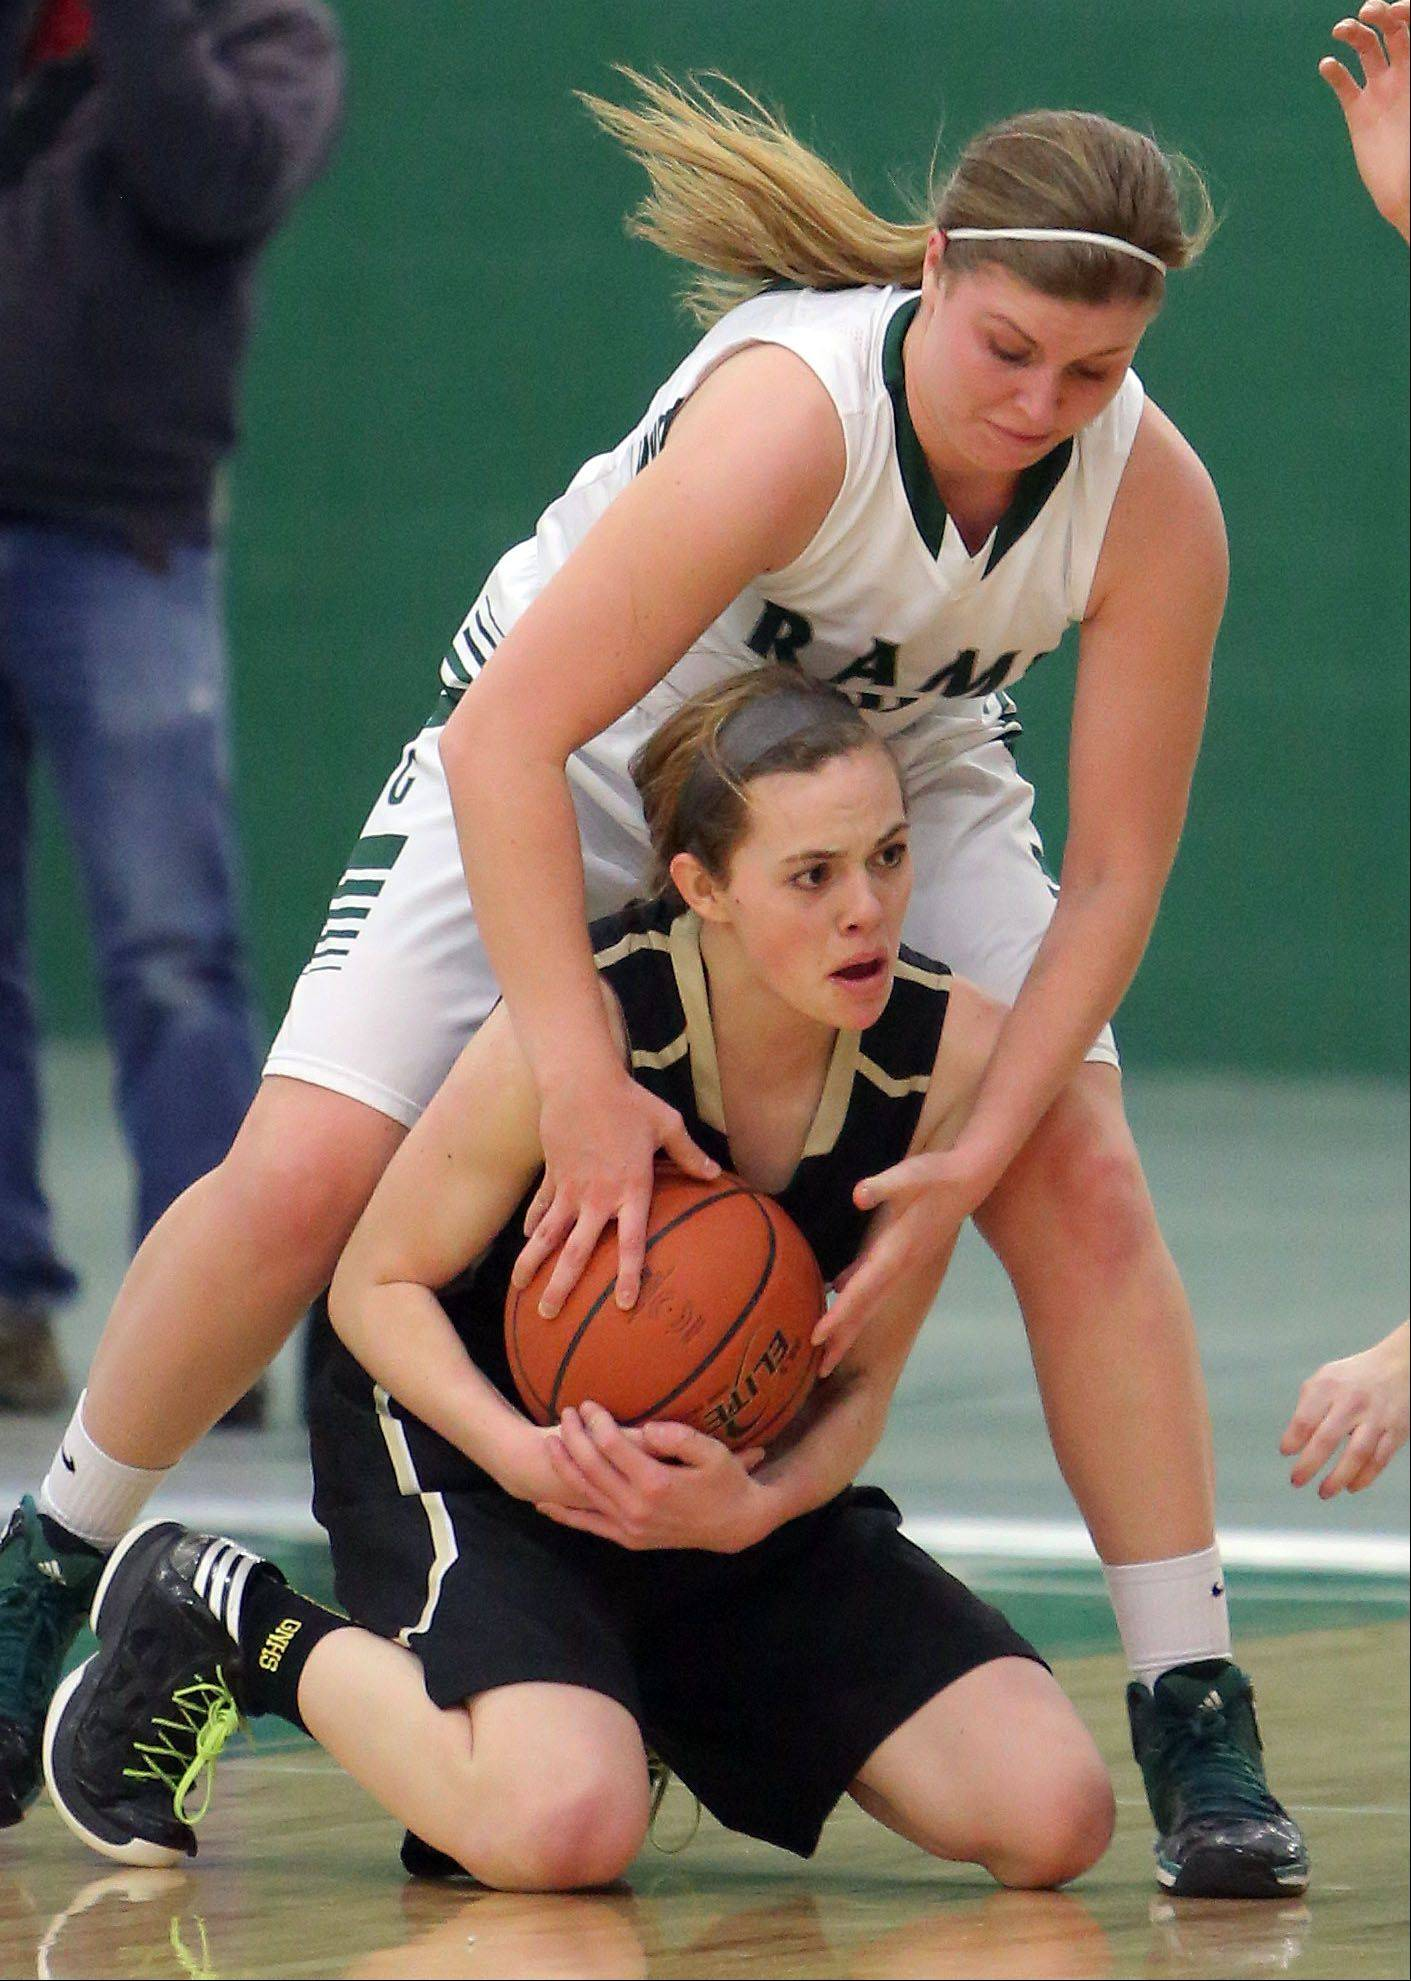 Grayslake North's Sidney Lovitsch, bottom, tries to control a loose ball as Grayslake Central's Maddy Miller defends Wednesday night at Grayslake Central.